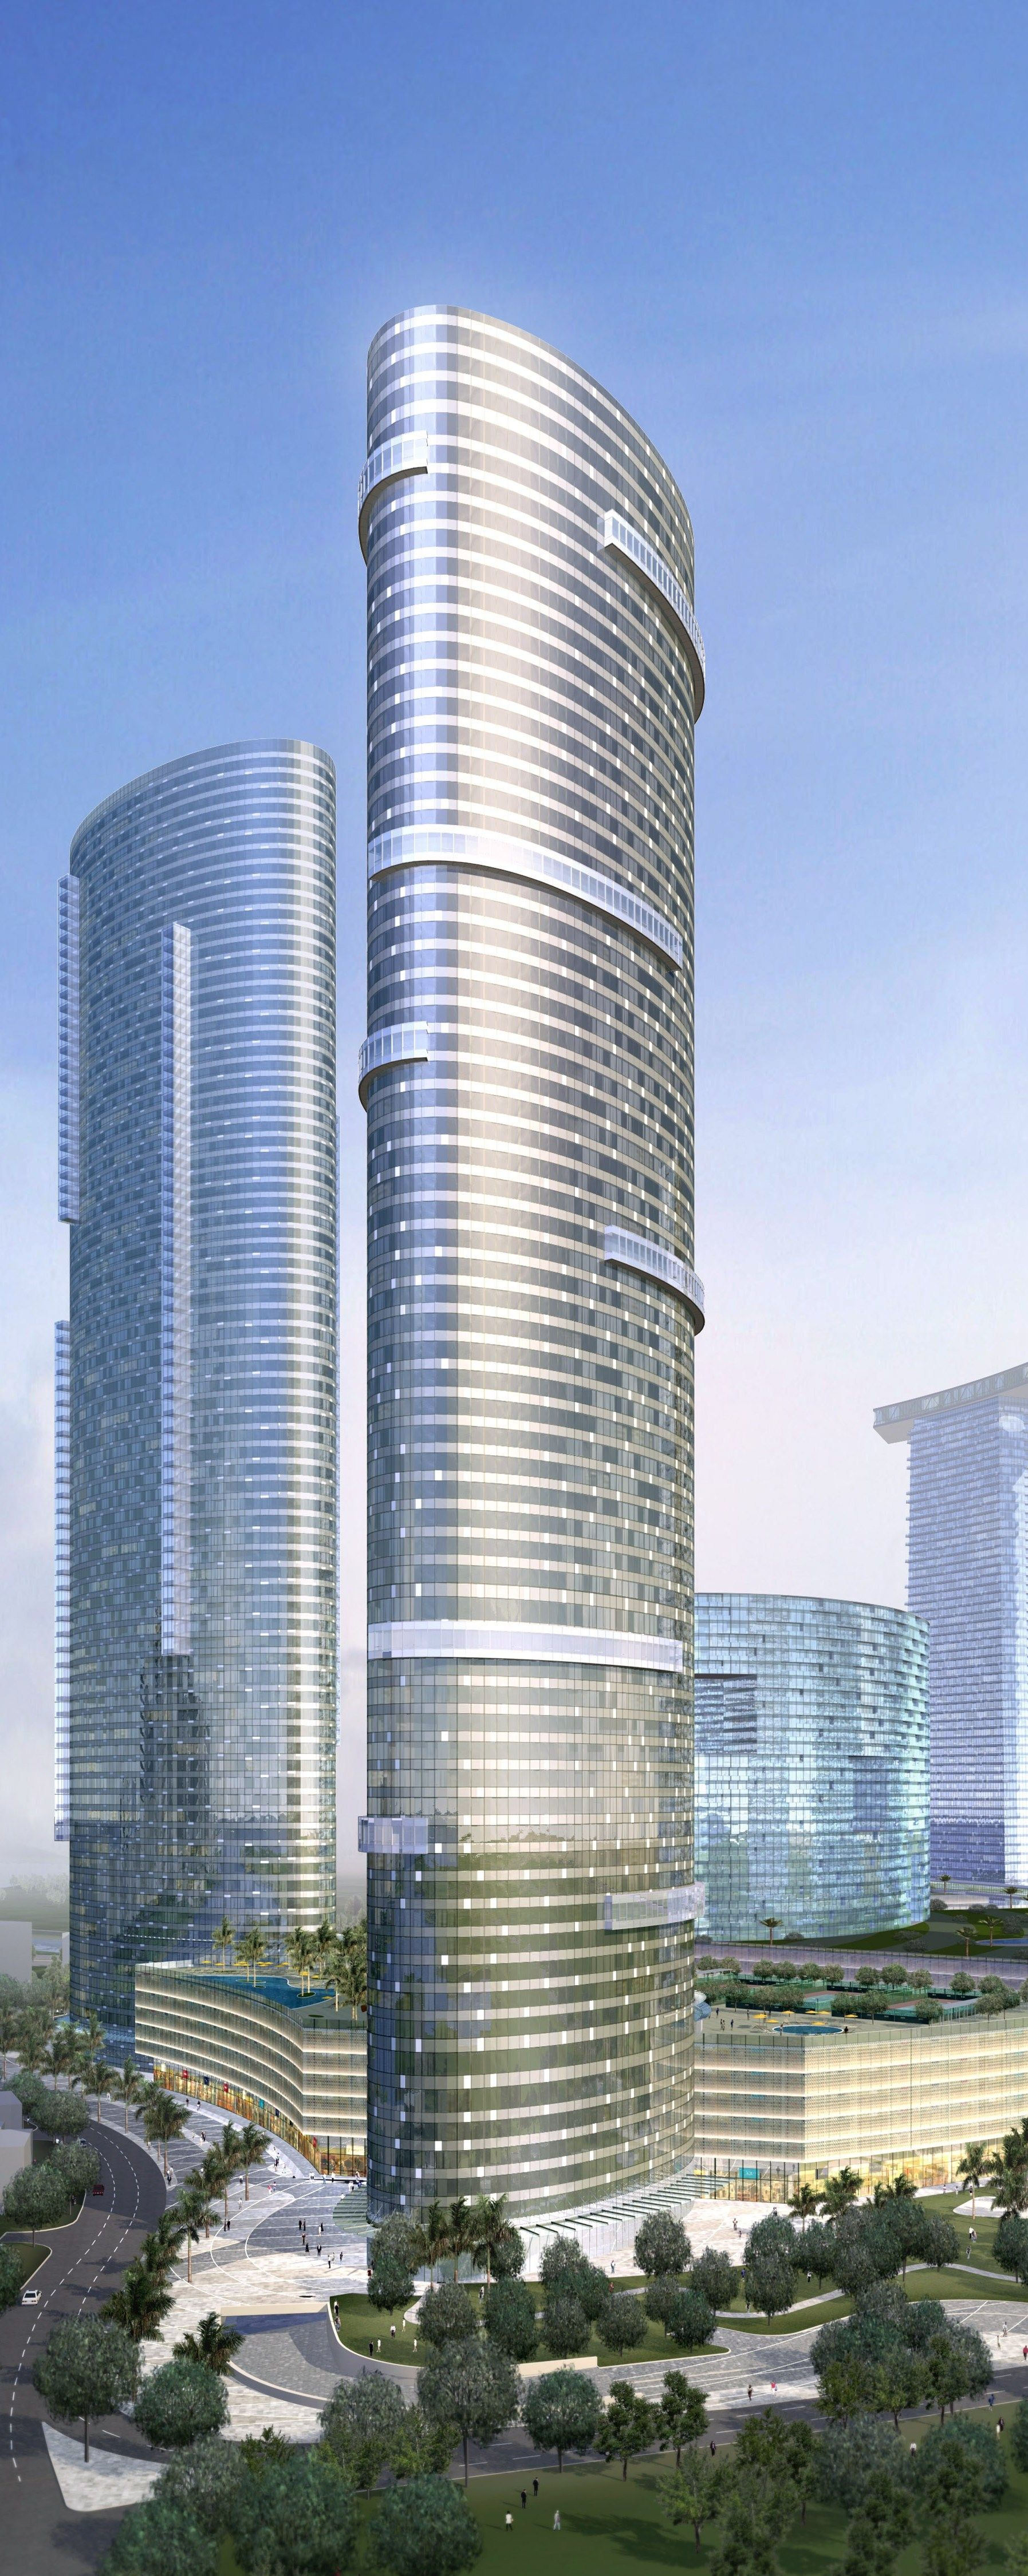 Sun Tower, The Gate Shams Abu Dhabi, UAE designed by Arquitectonica :: 64 floors, height 238m